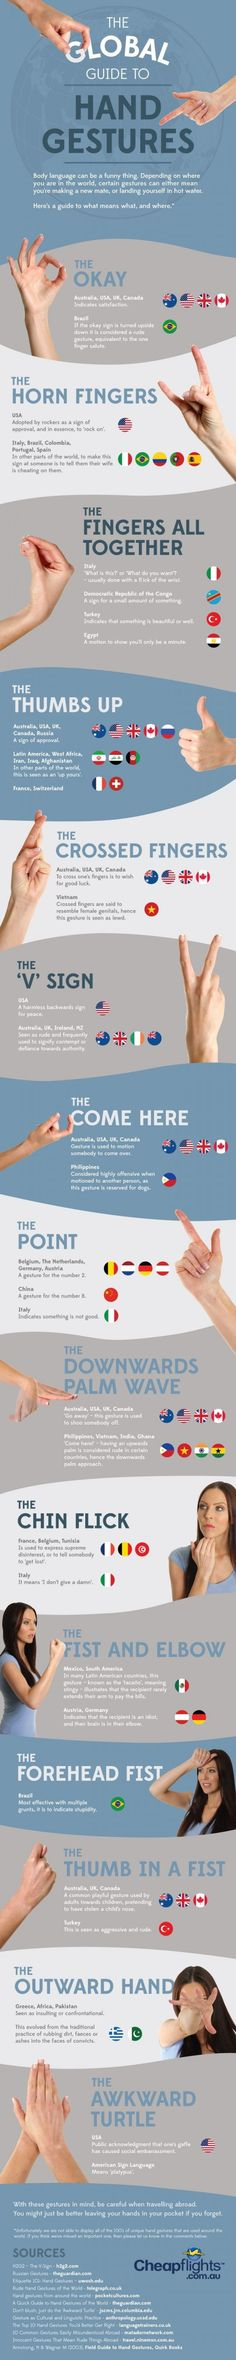 """Infographic: """"The Global Guide to Hand Gestures"""""""